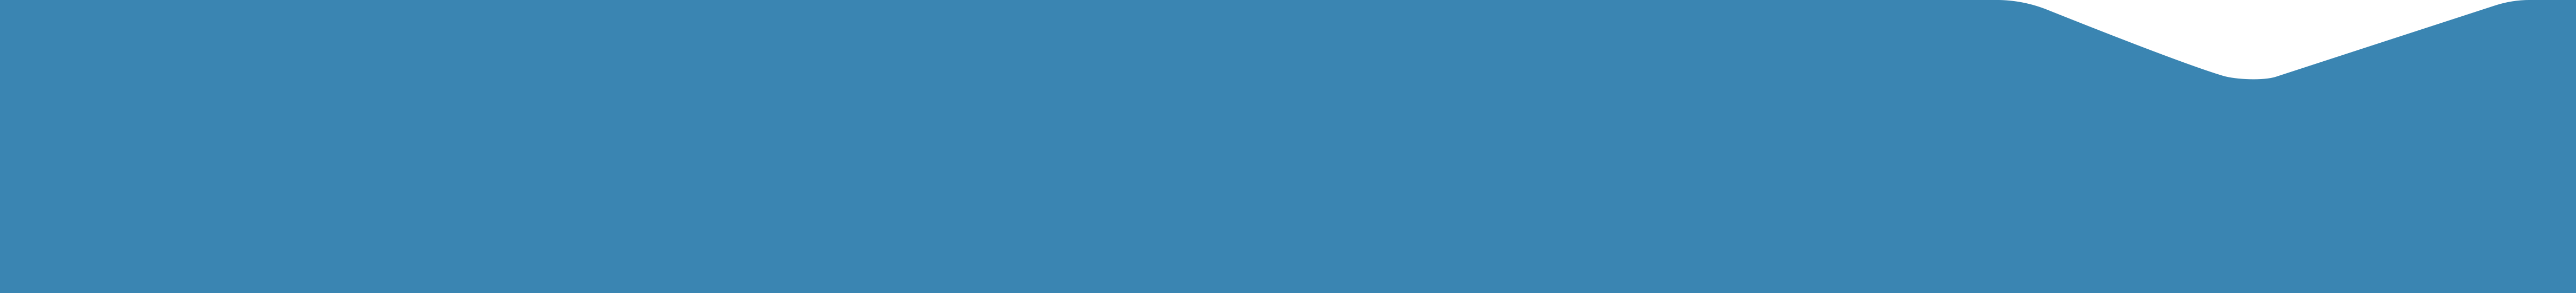 header_down-blue.png